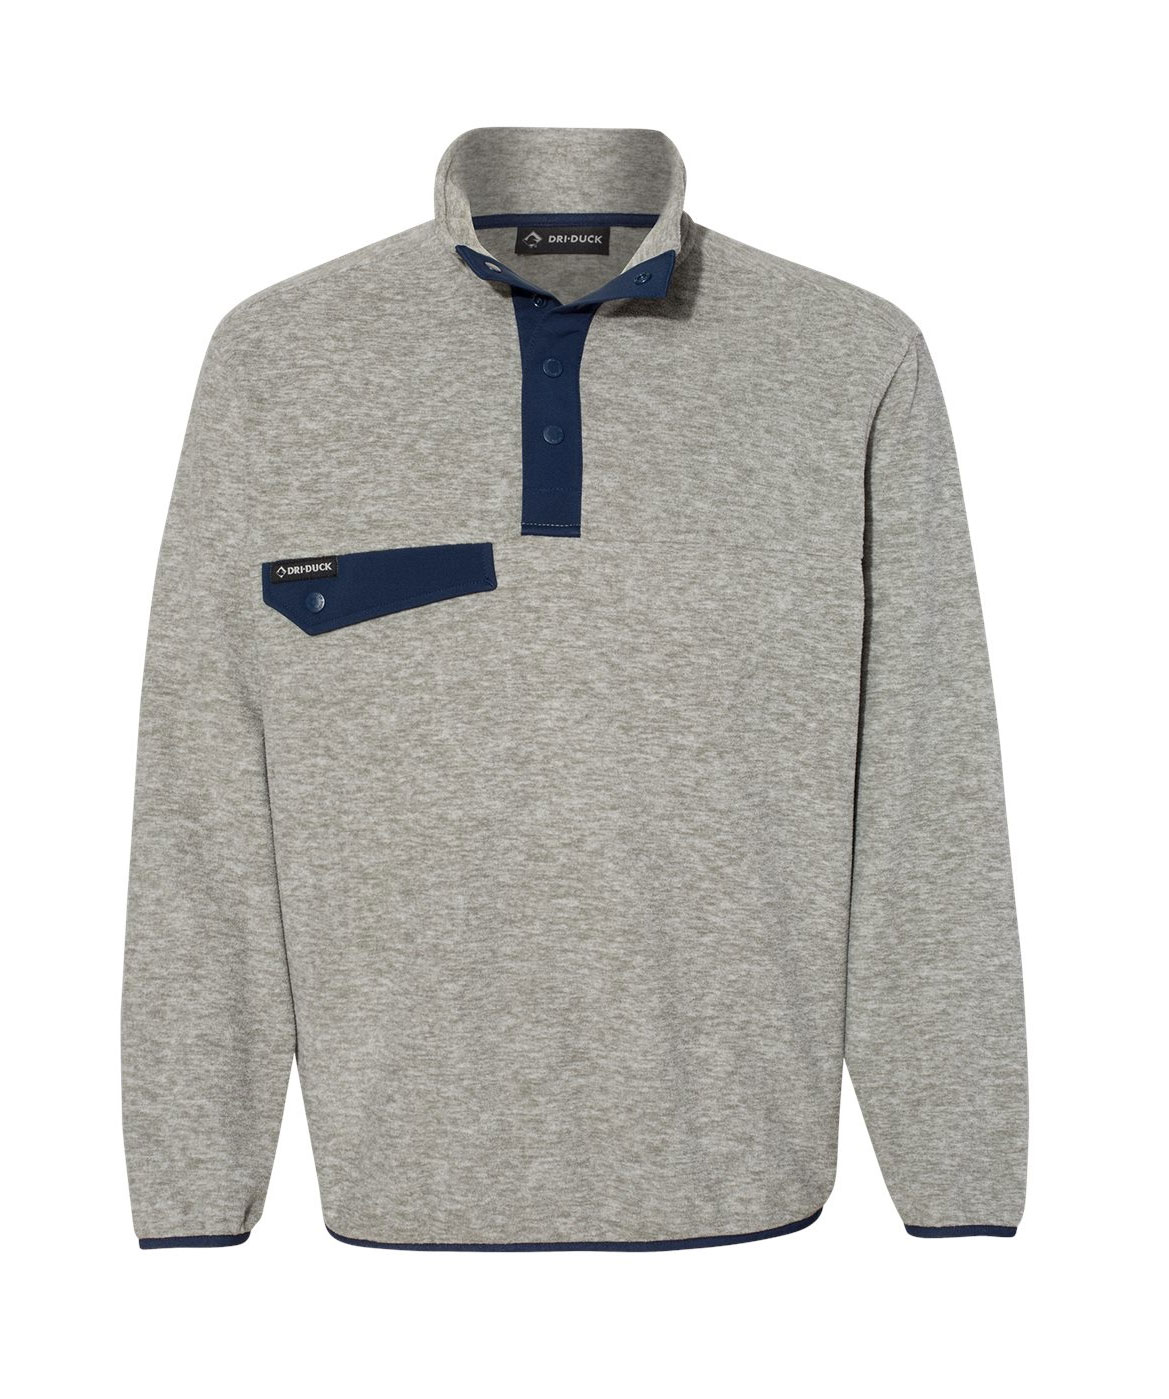 Dri Duck Mens Denali Fleece Pullover